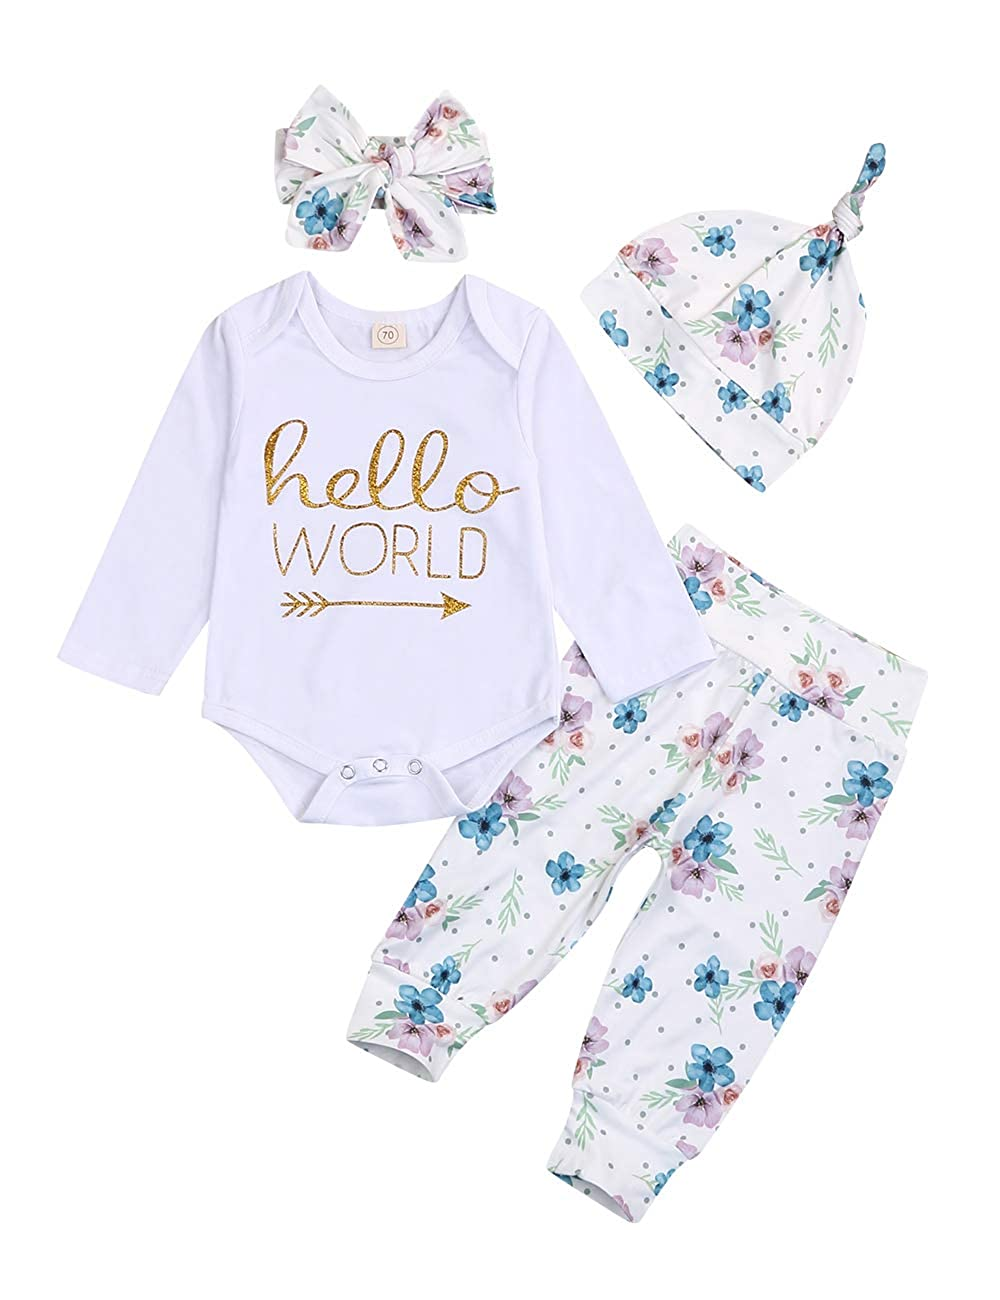 Pants Outfit Set 2pcs Baby Girl Clothes Fall Winter Long Sleeve Floral Print Hoodie